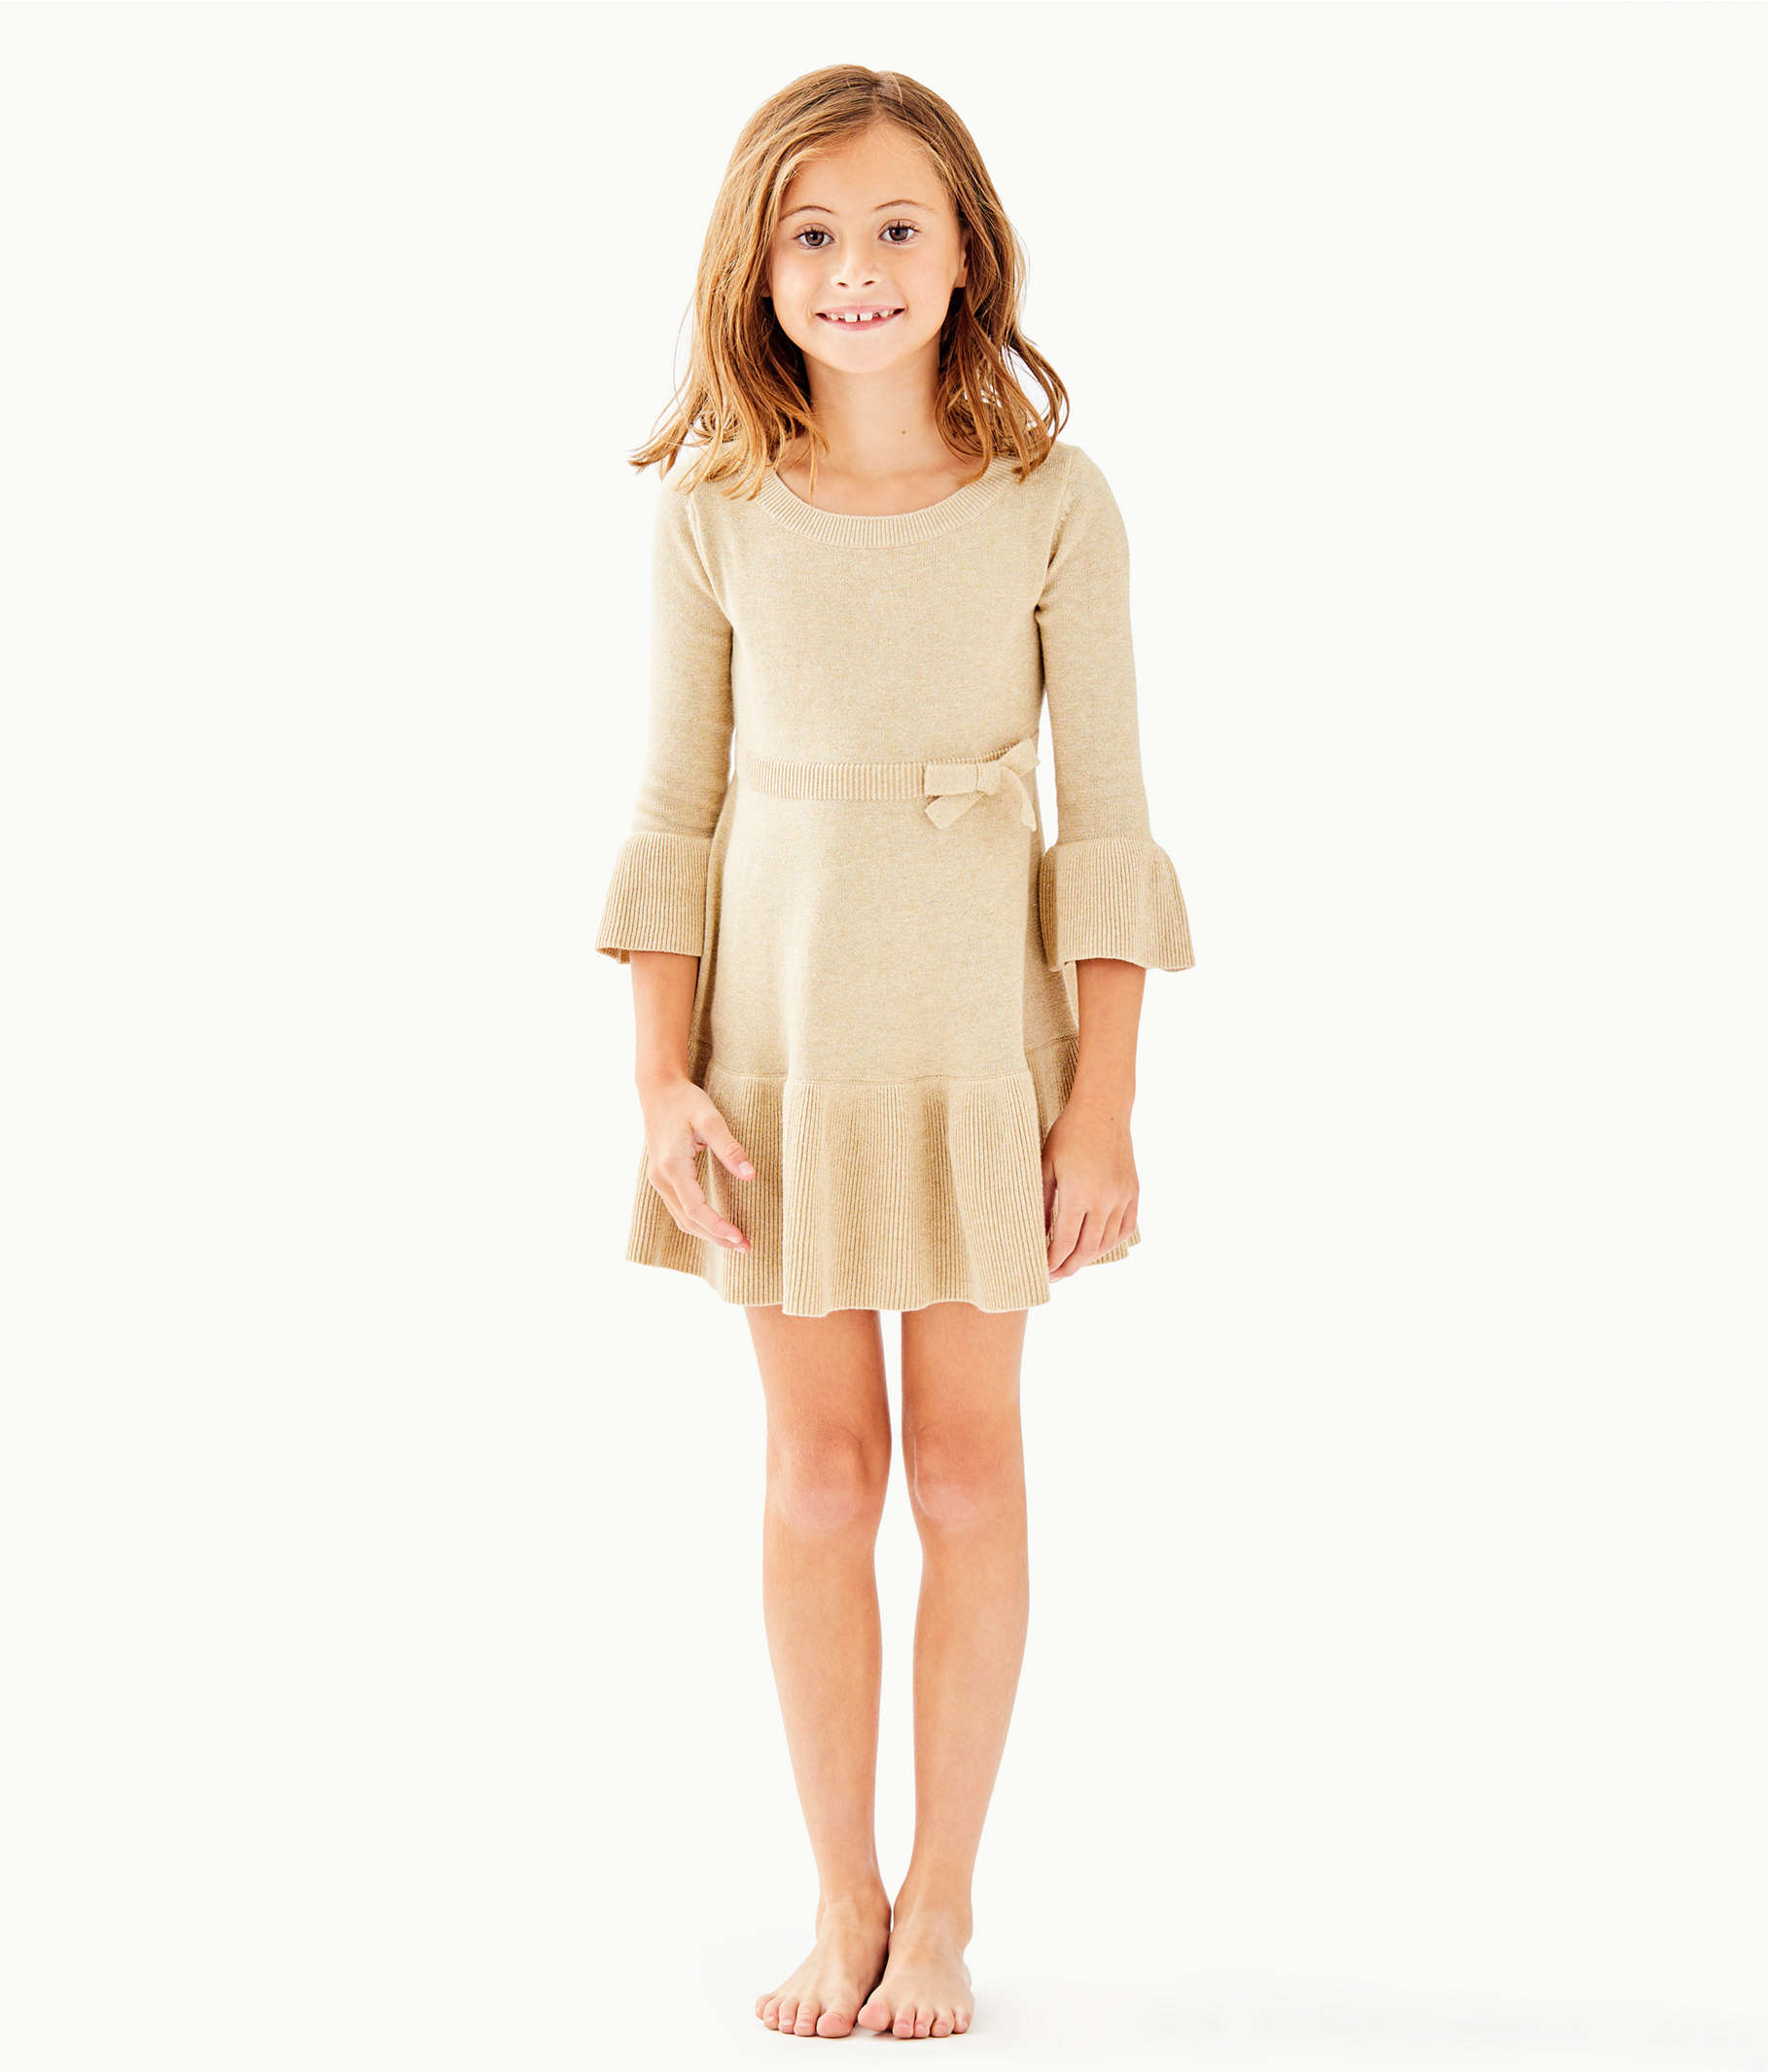 b392ab268c717 Girls Amara Sweater Dress, Gold Metallic, large ...